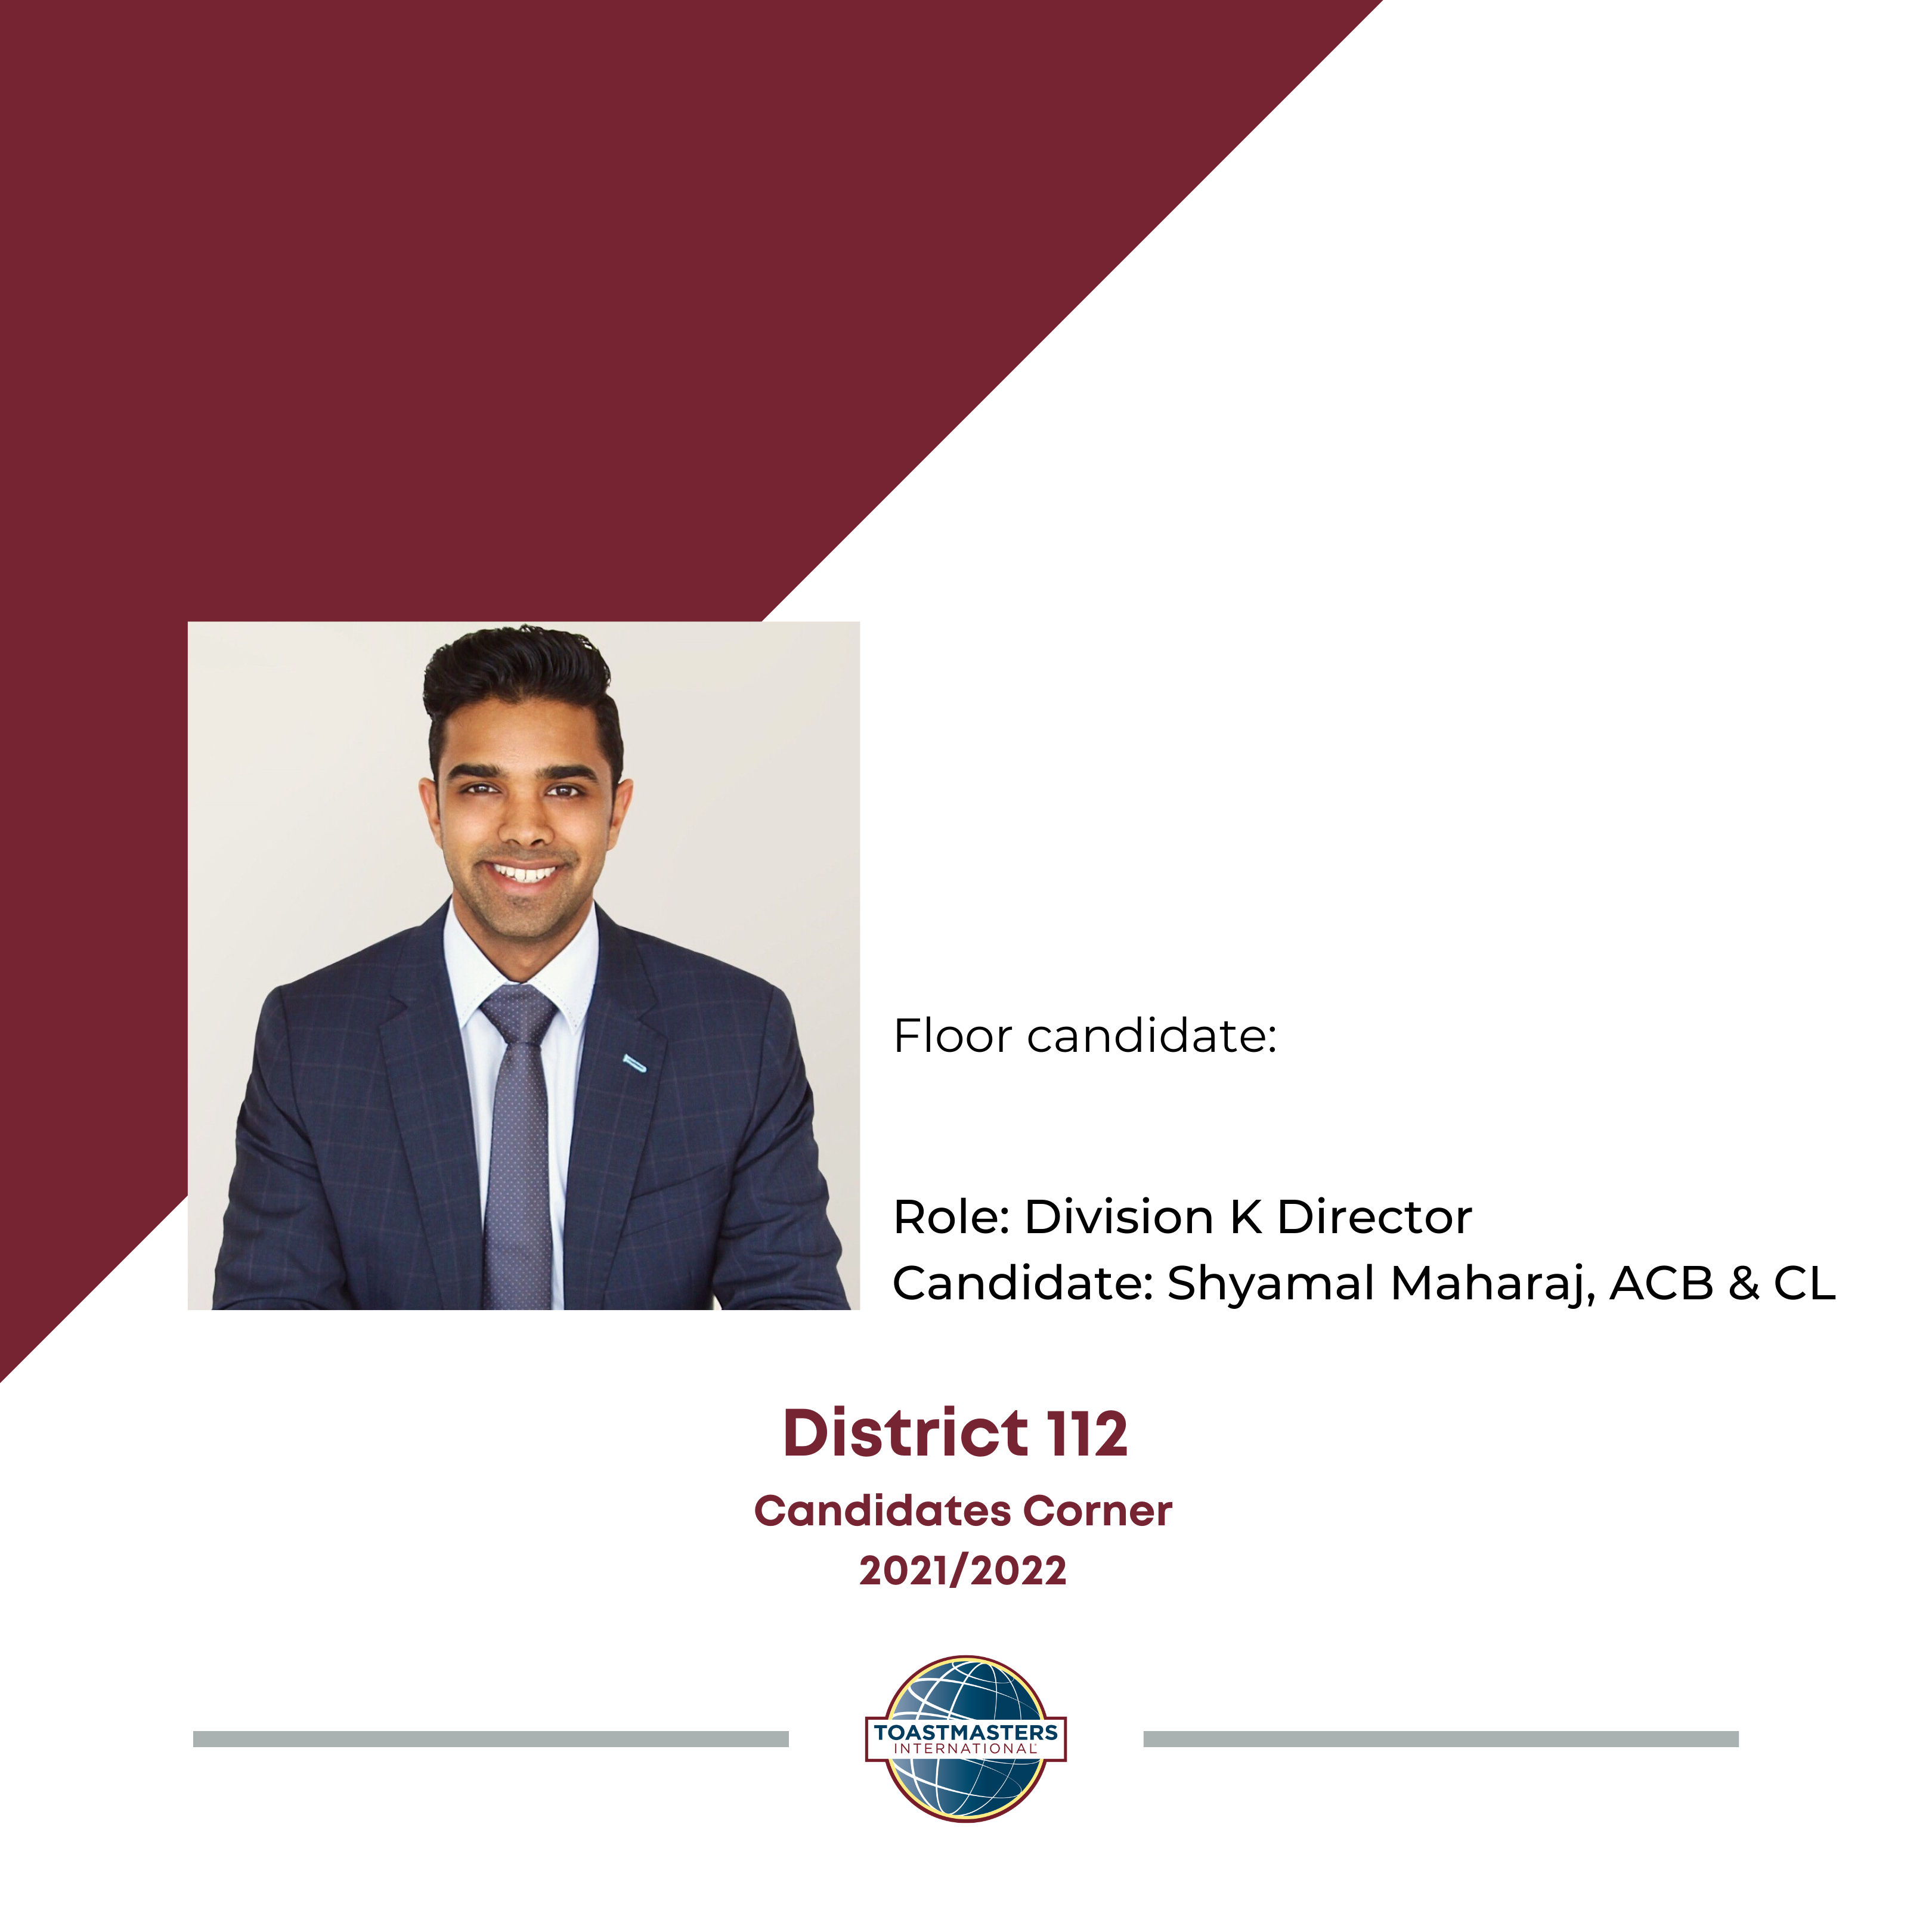 Floor candidate Role: Division K Director Candidate: Shyamal Maharaj, ACB & CL